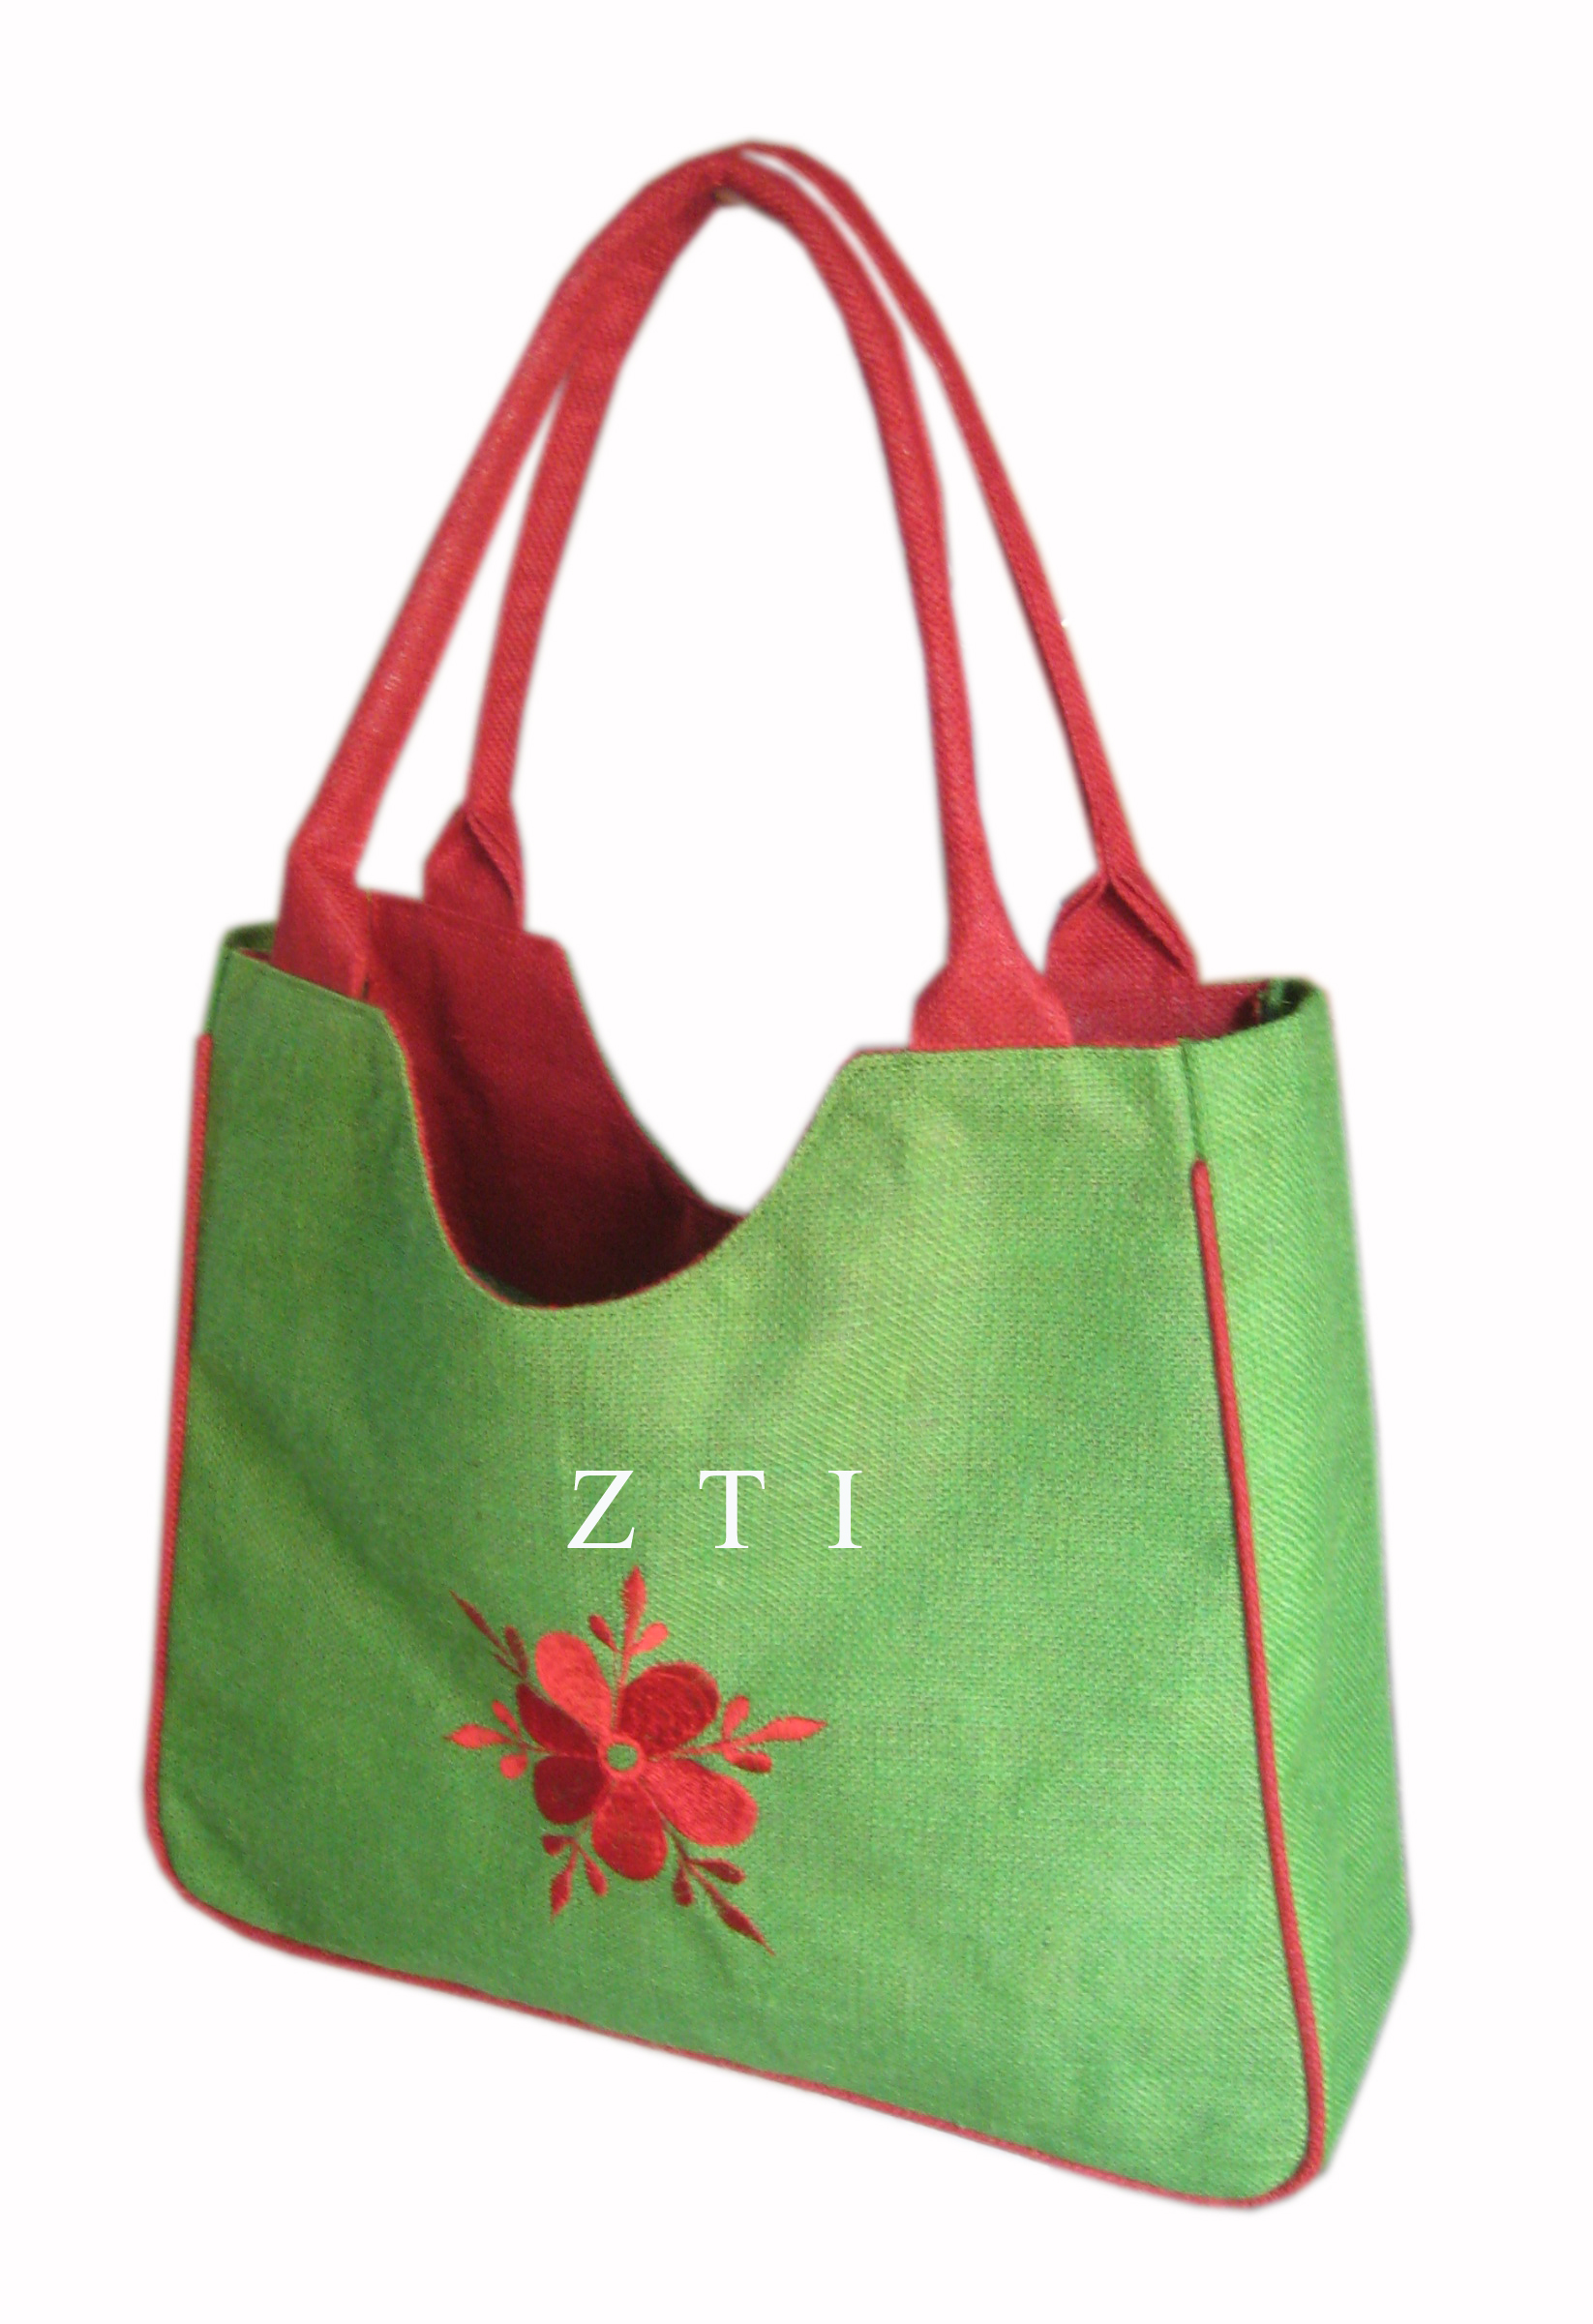 MODEL-NO.-JE-1296-SIZE-43x36x10cms.-PRICE-US-1.49